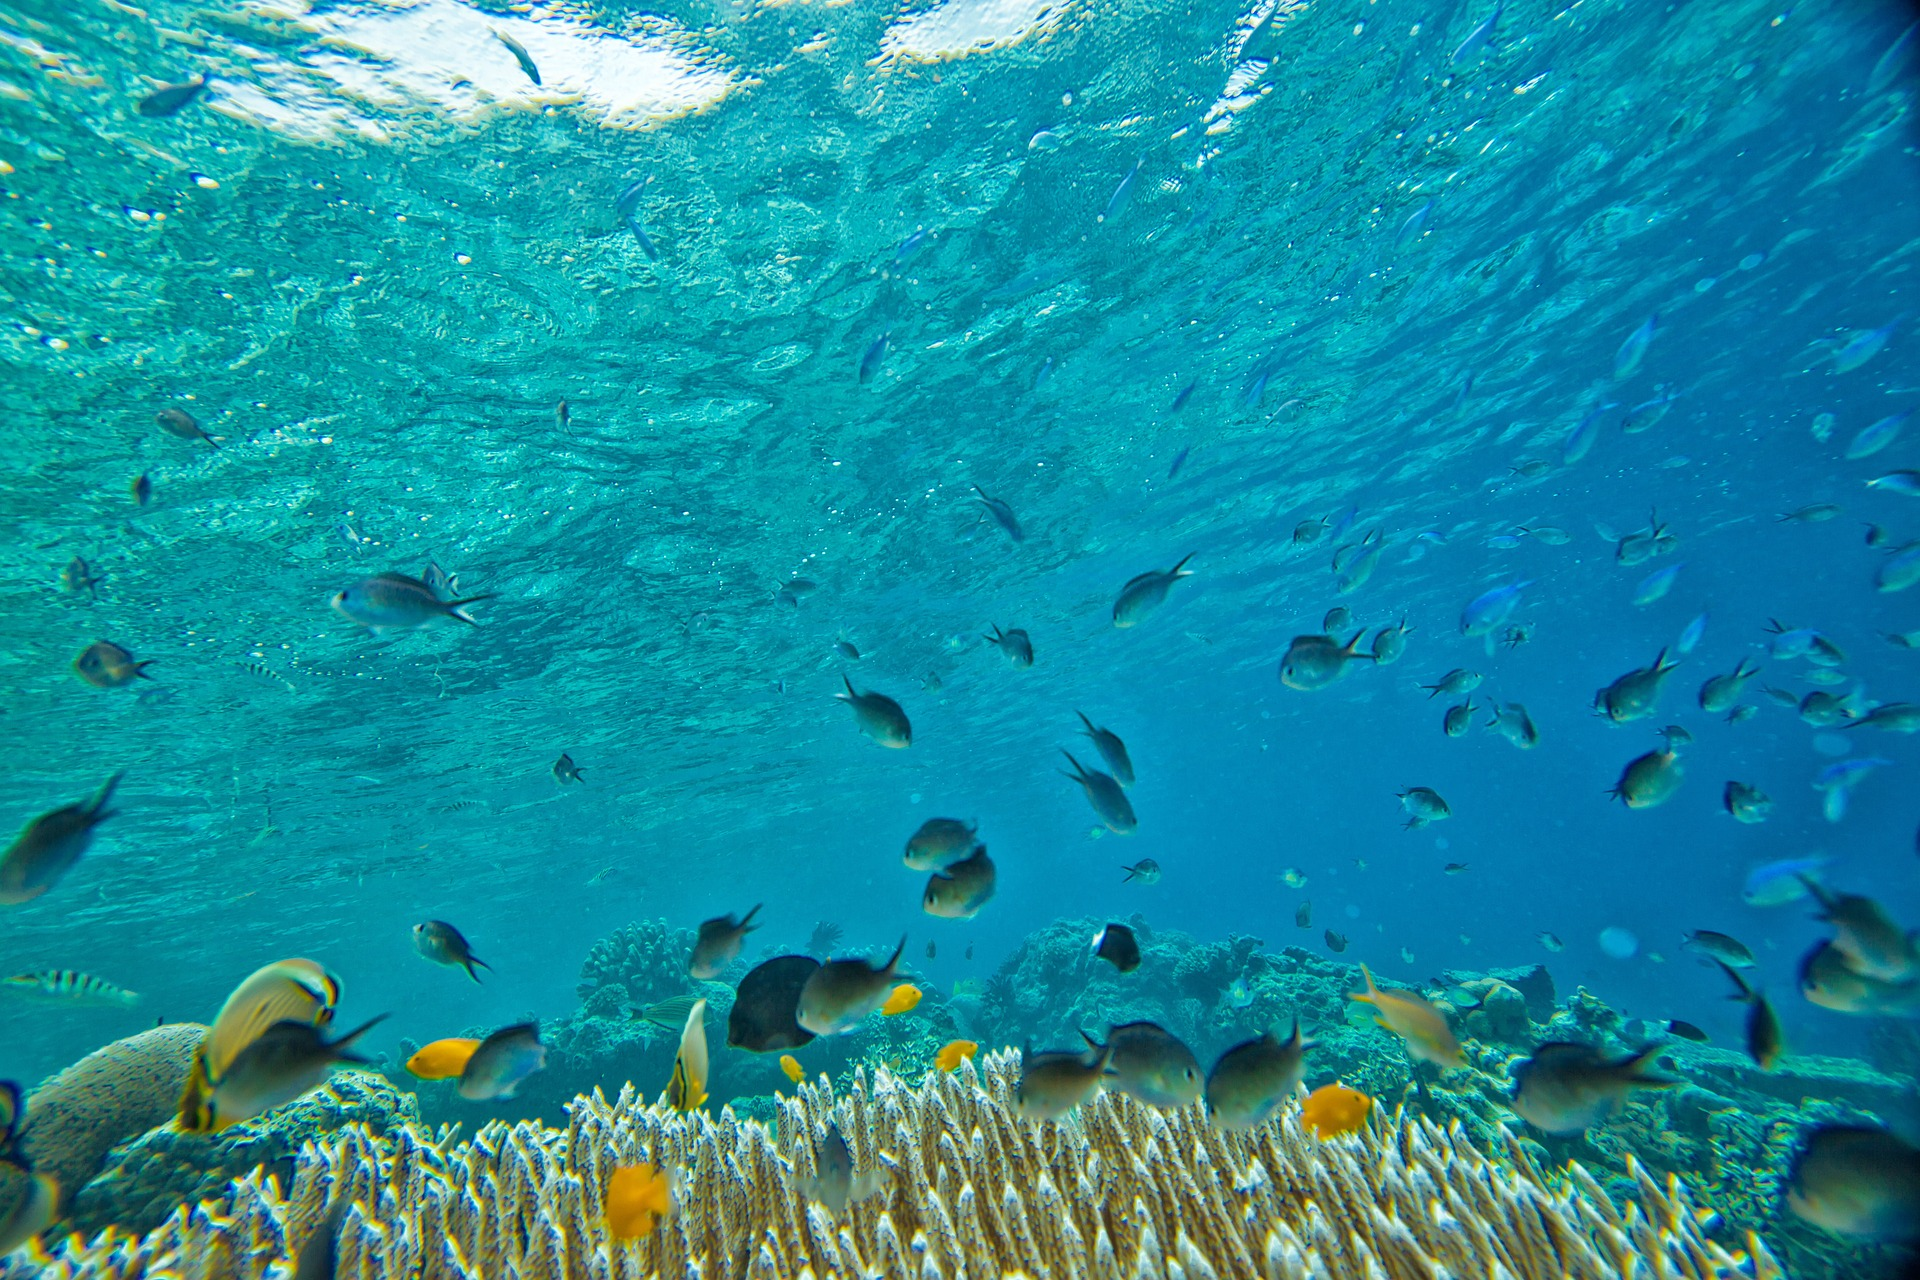 Our snorkelling experience in Indonesia